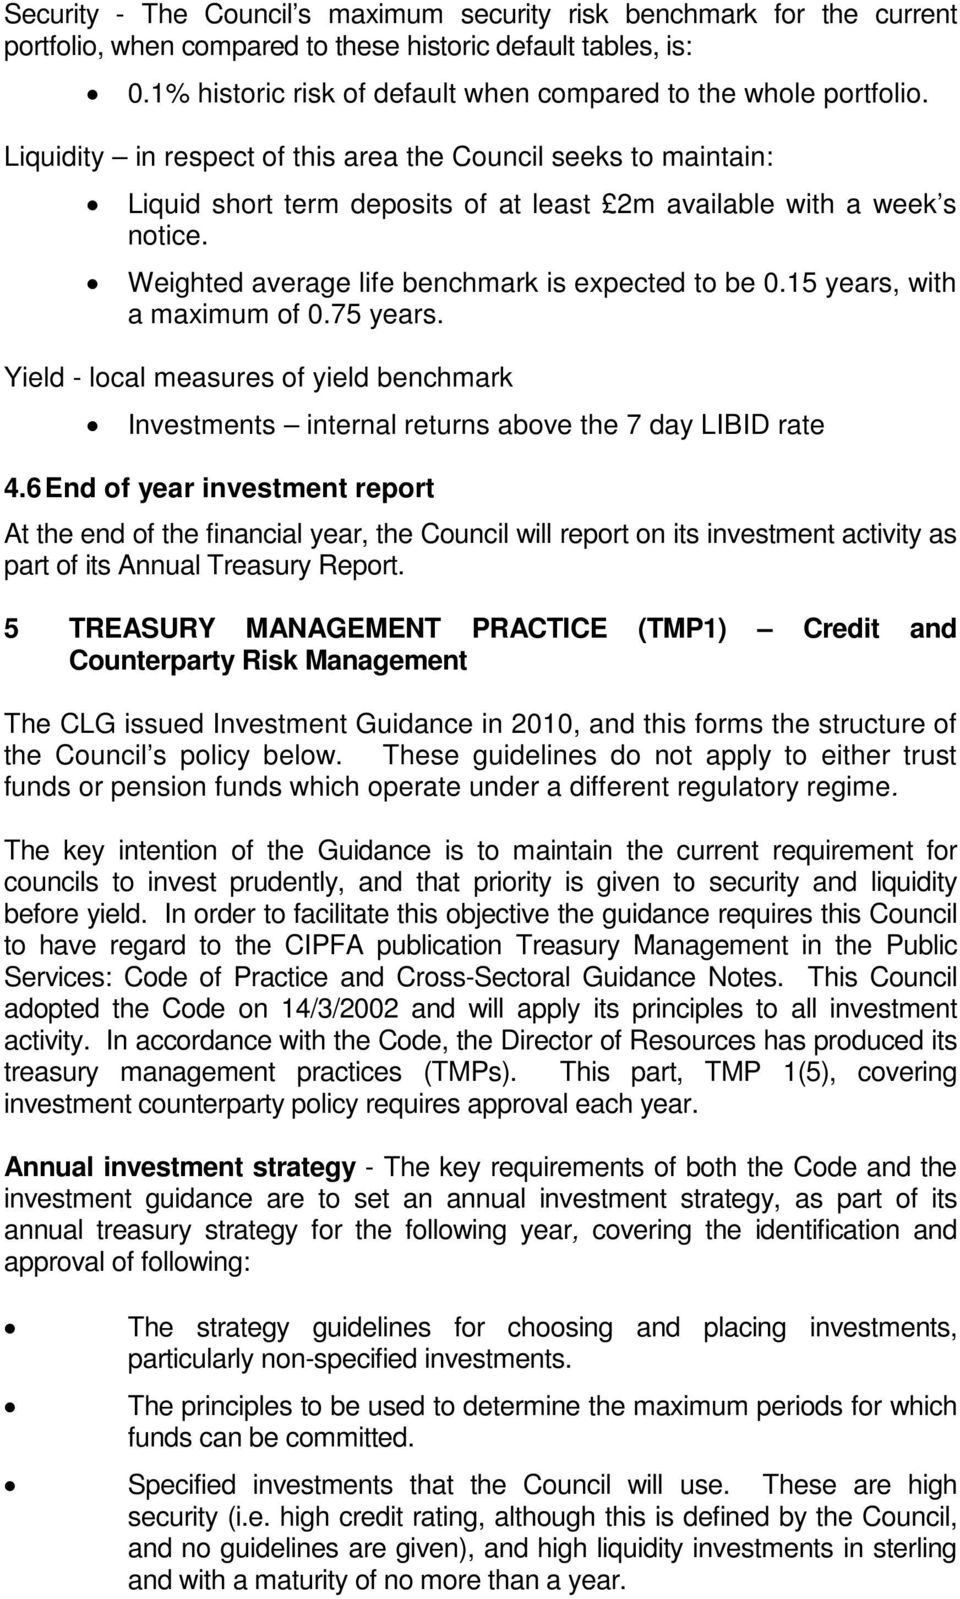 Liquidity in respect of this area the Council seeks to maintain: Liquid short term deposits of at least 2m available with a week s notice. Weighted average life benchmark is expected to be 0.